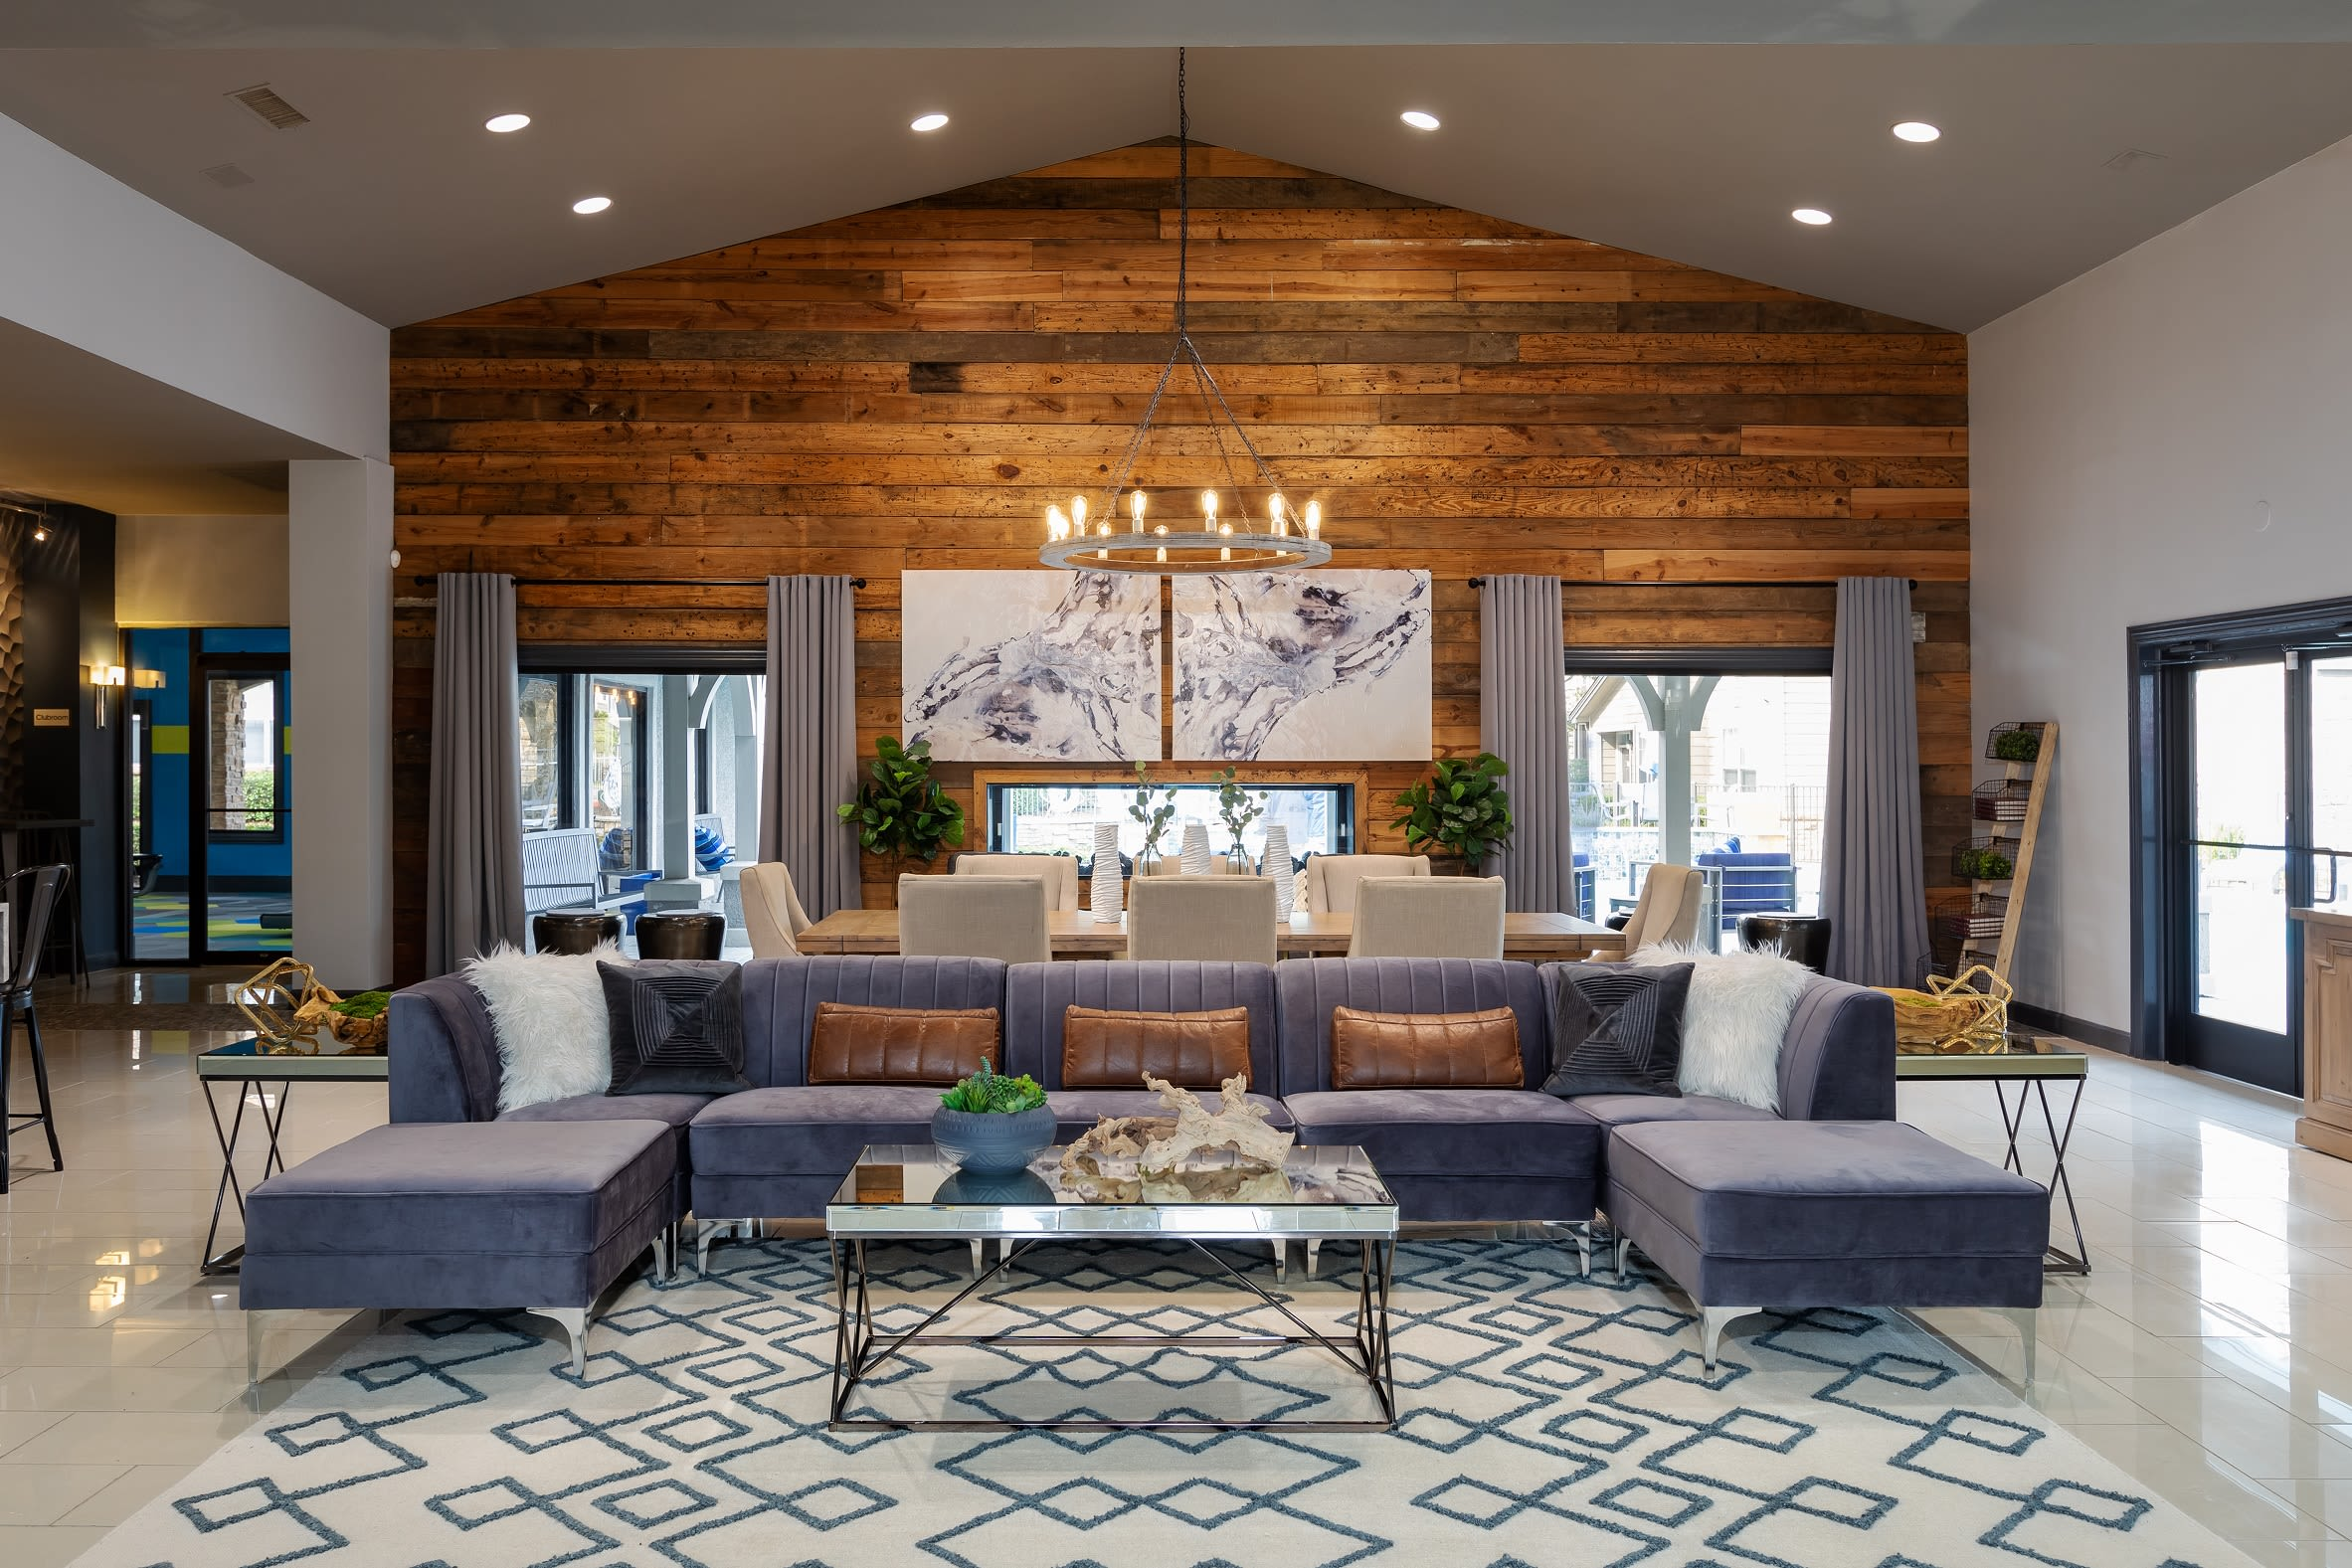 Apartments at Artisan at Lake Wyndemere in The Woodlands, Texas